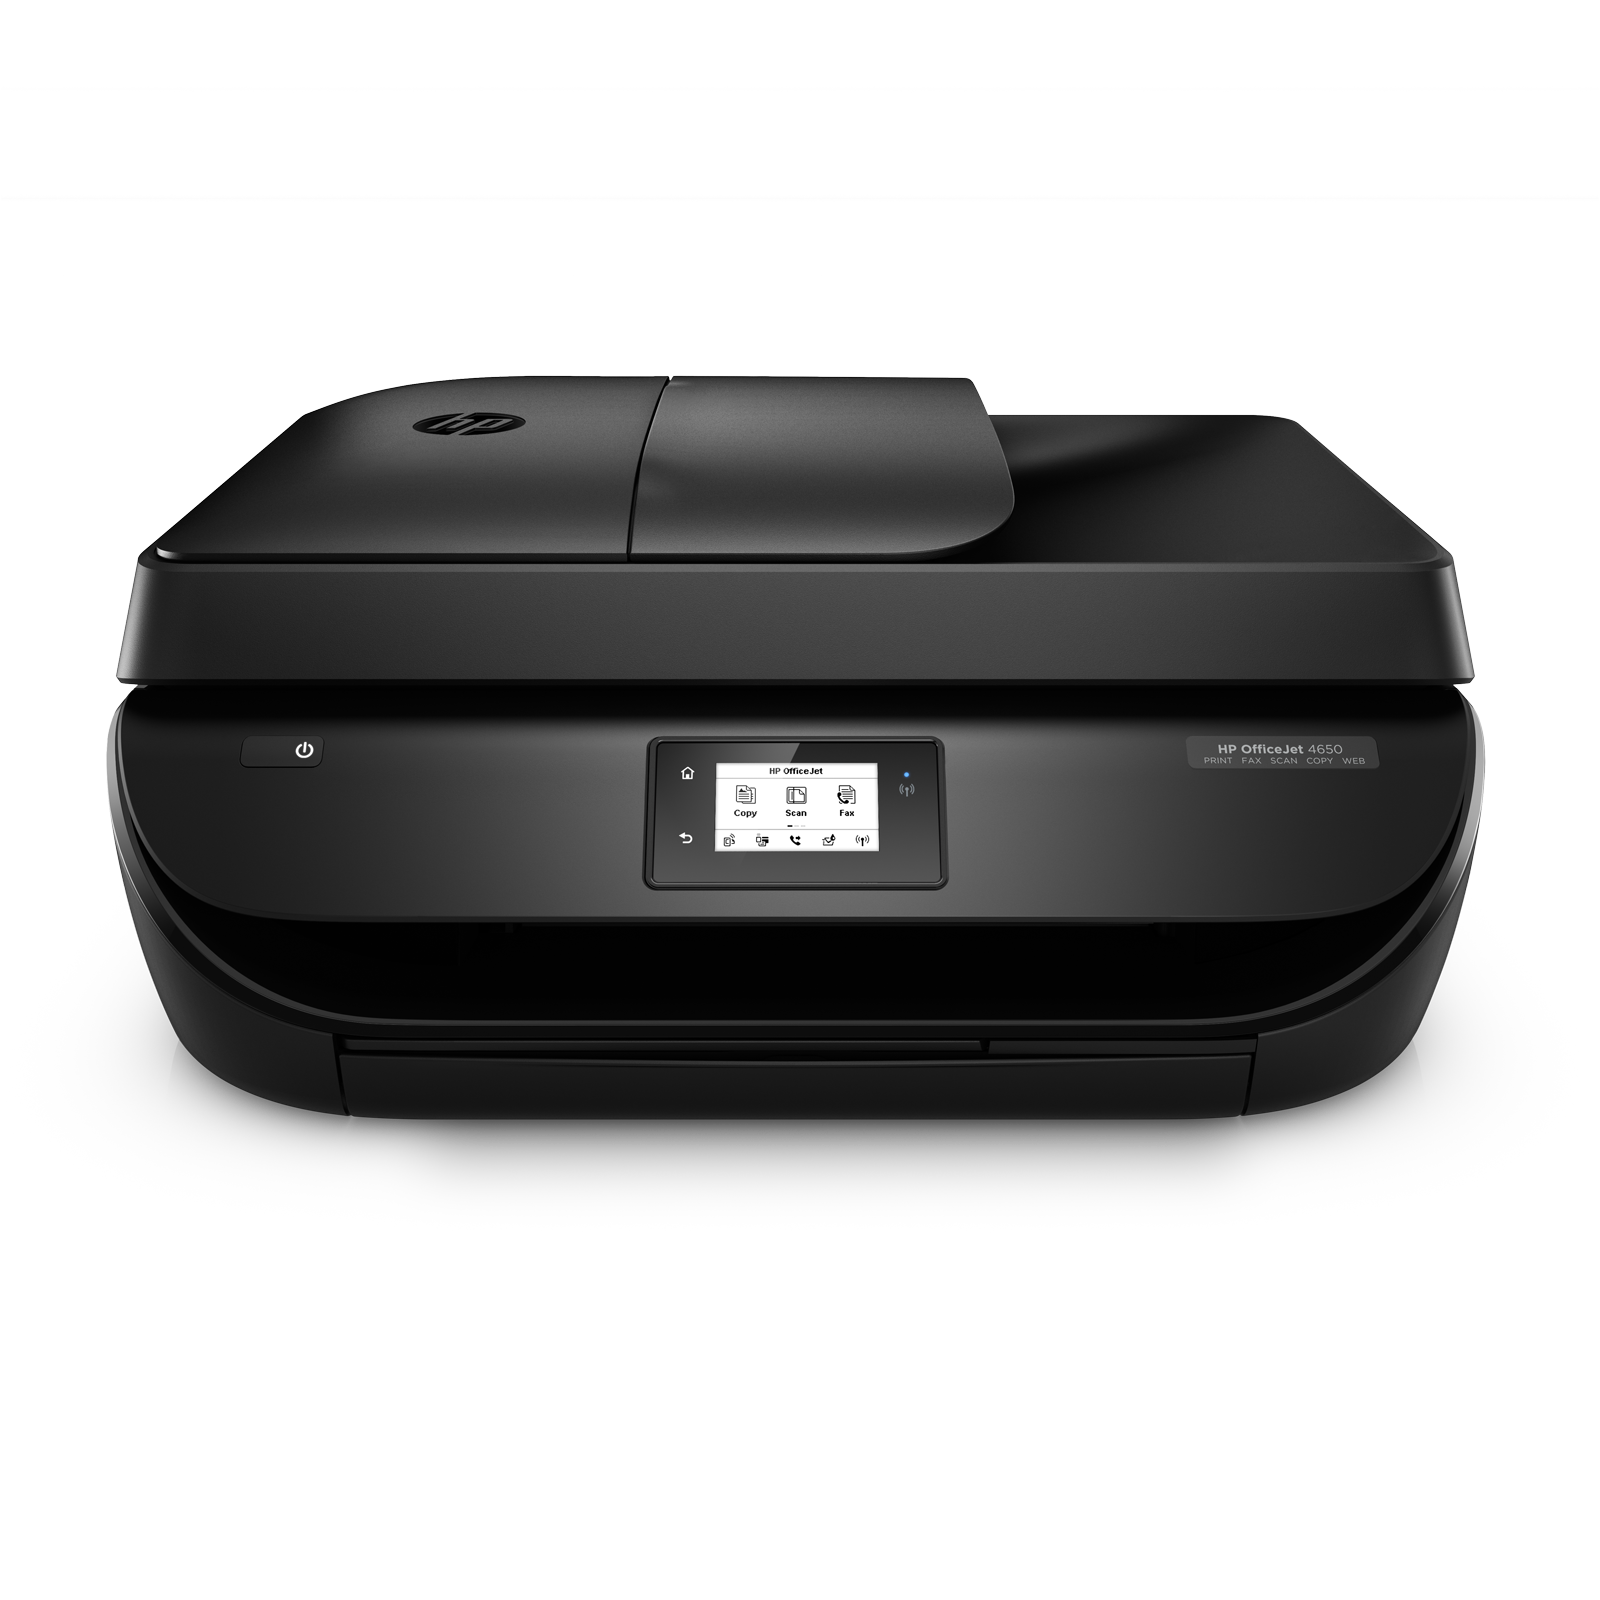 HP Officejet 4650 All-in-One - multifunction printer (color)